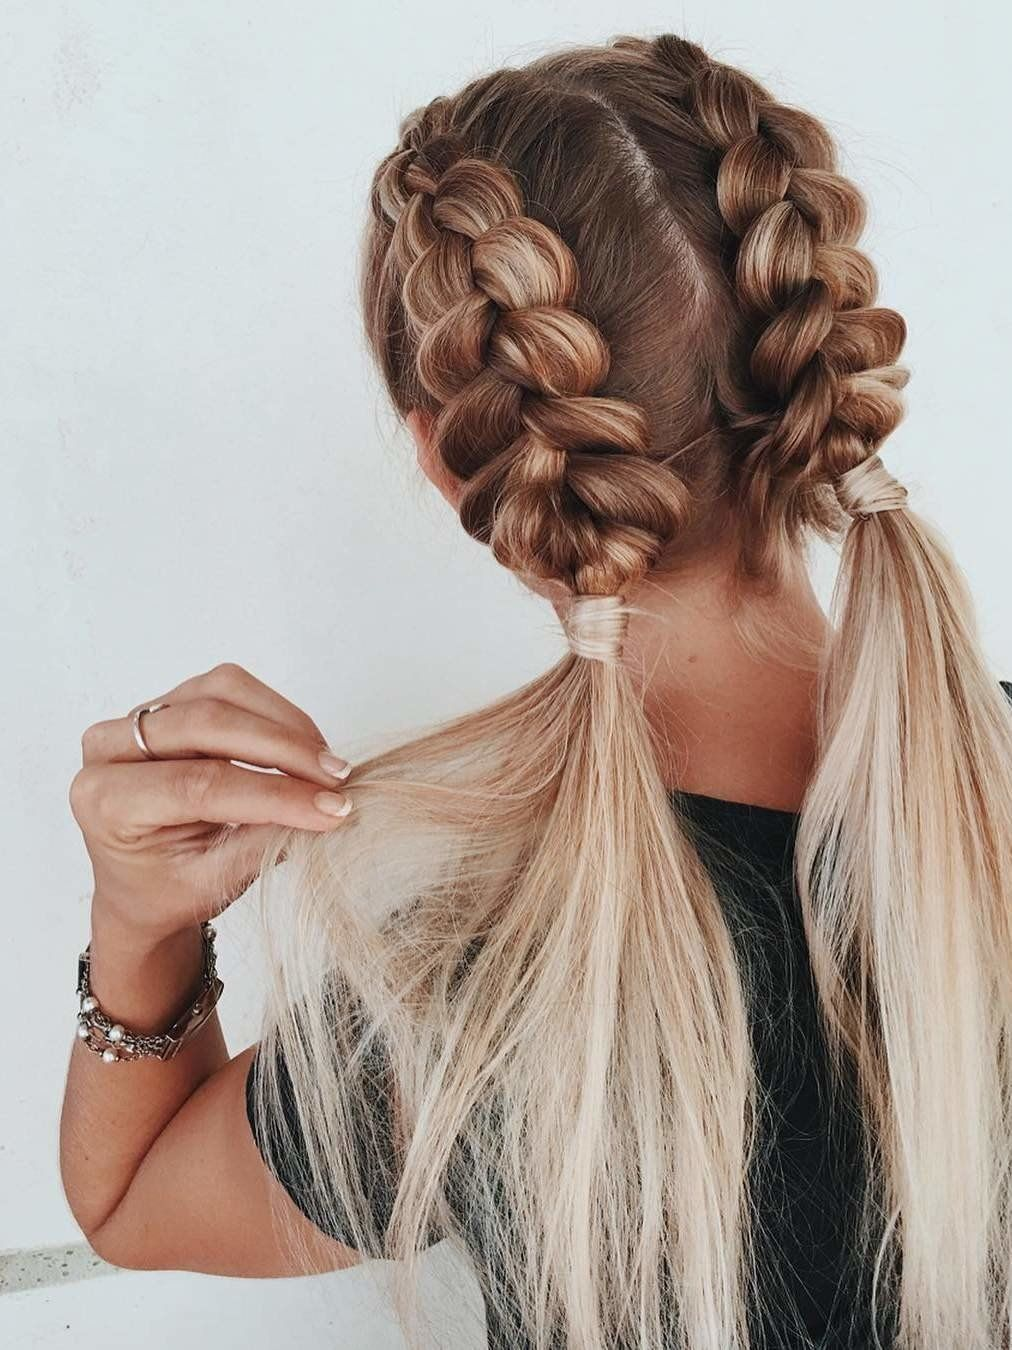 12 Braided Hairstyles That People Are Loving on Pinterest  Hair